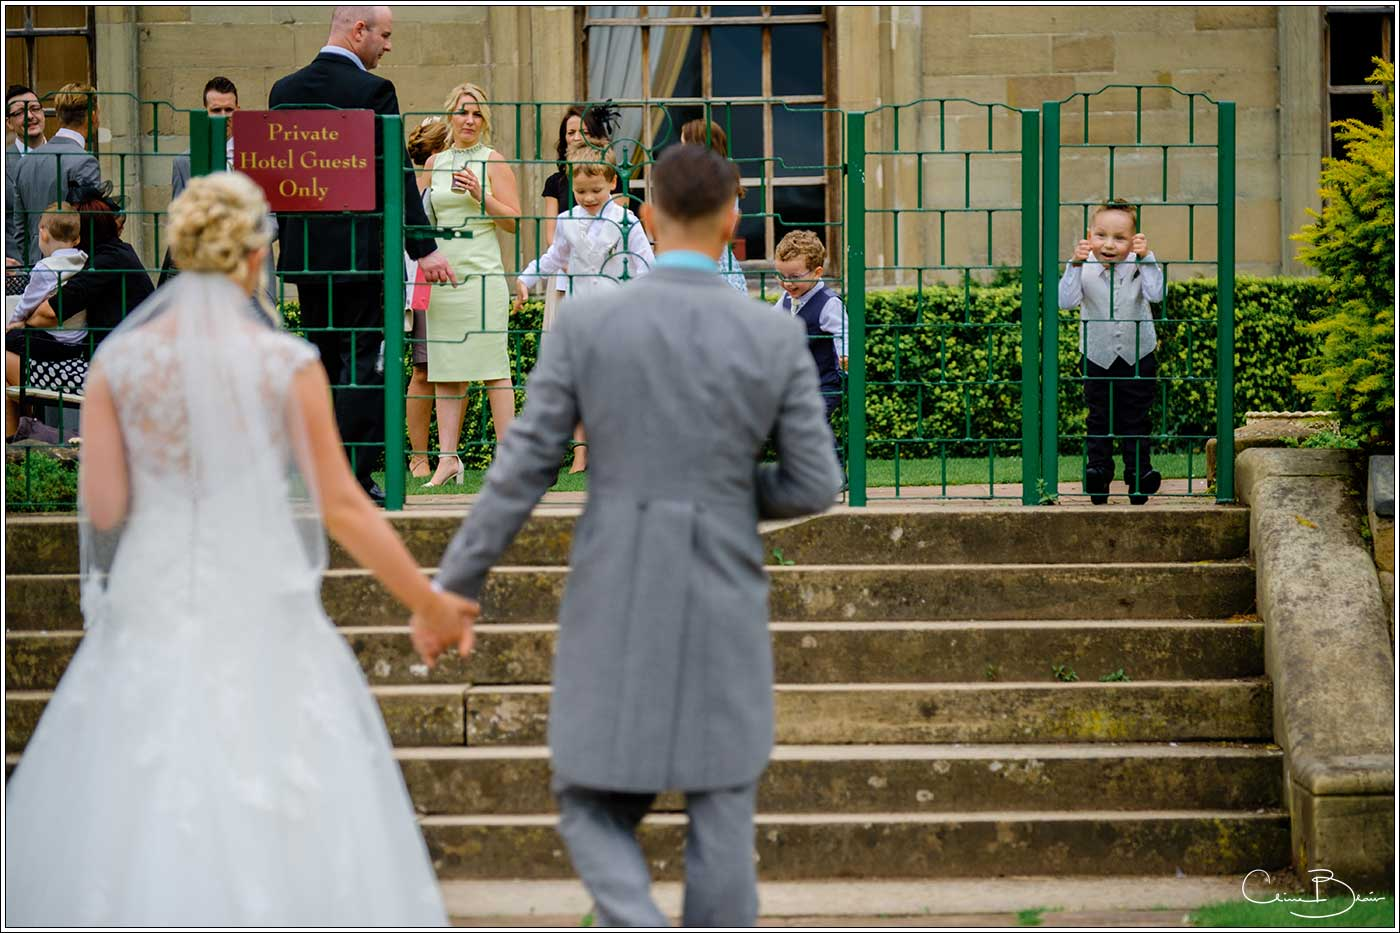 Coombe Abbey wedding photography showing bride and groom walking toward children looking on